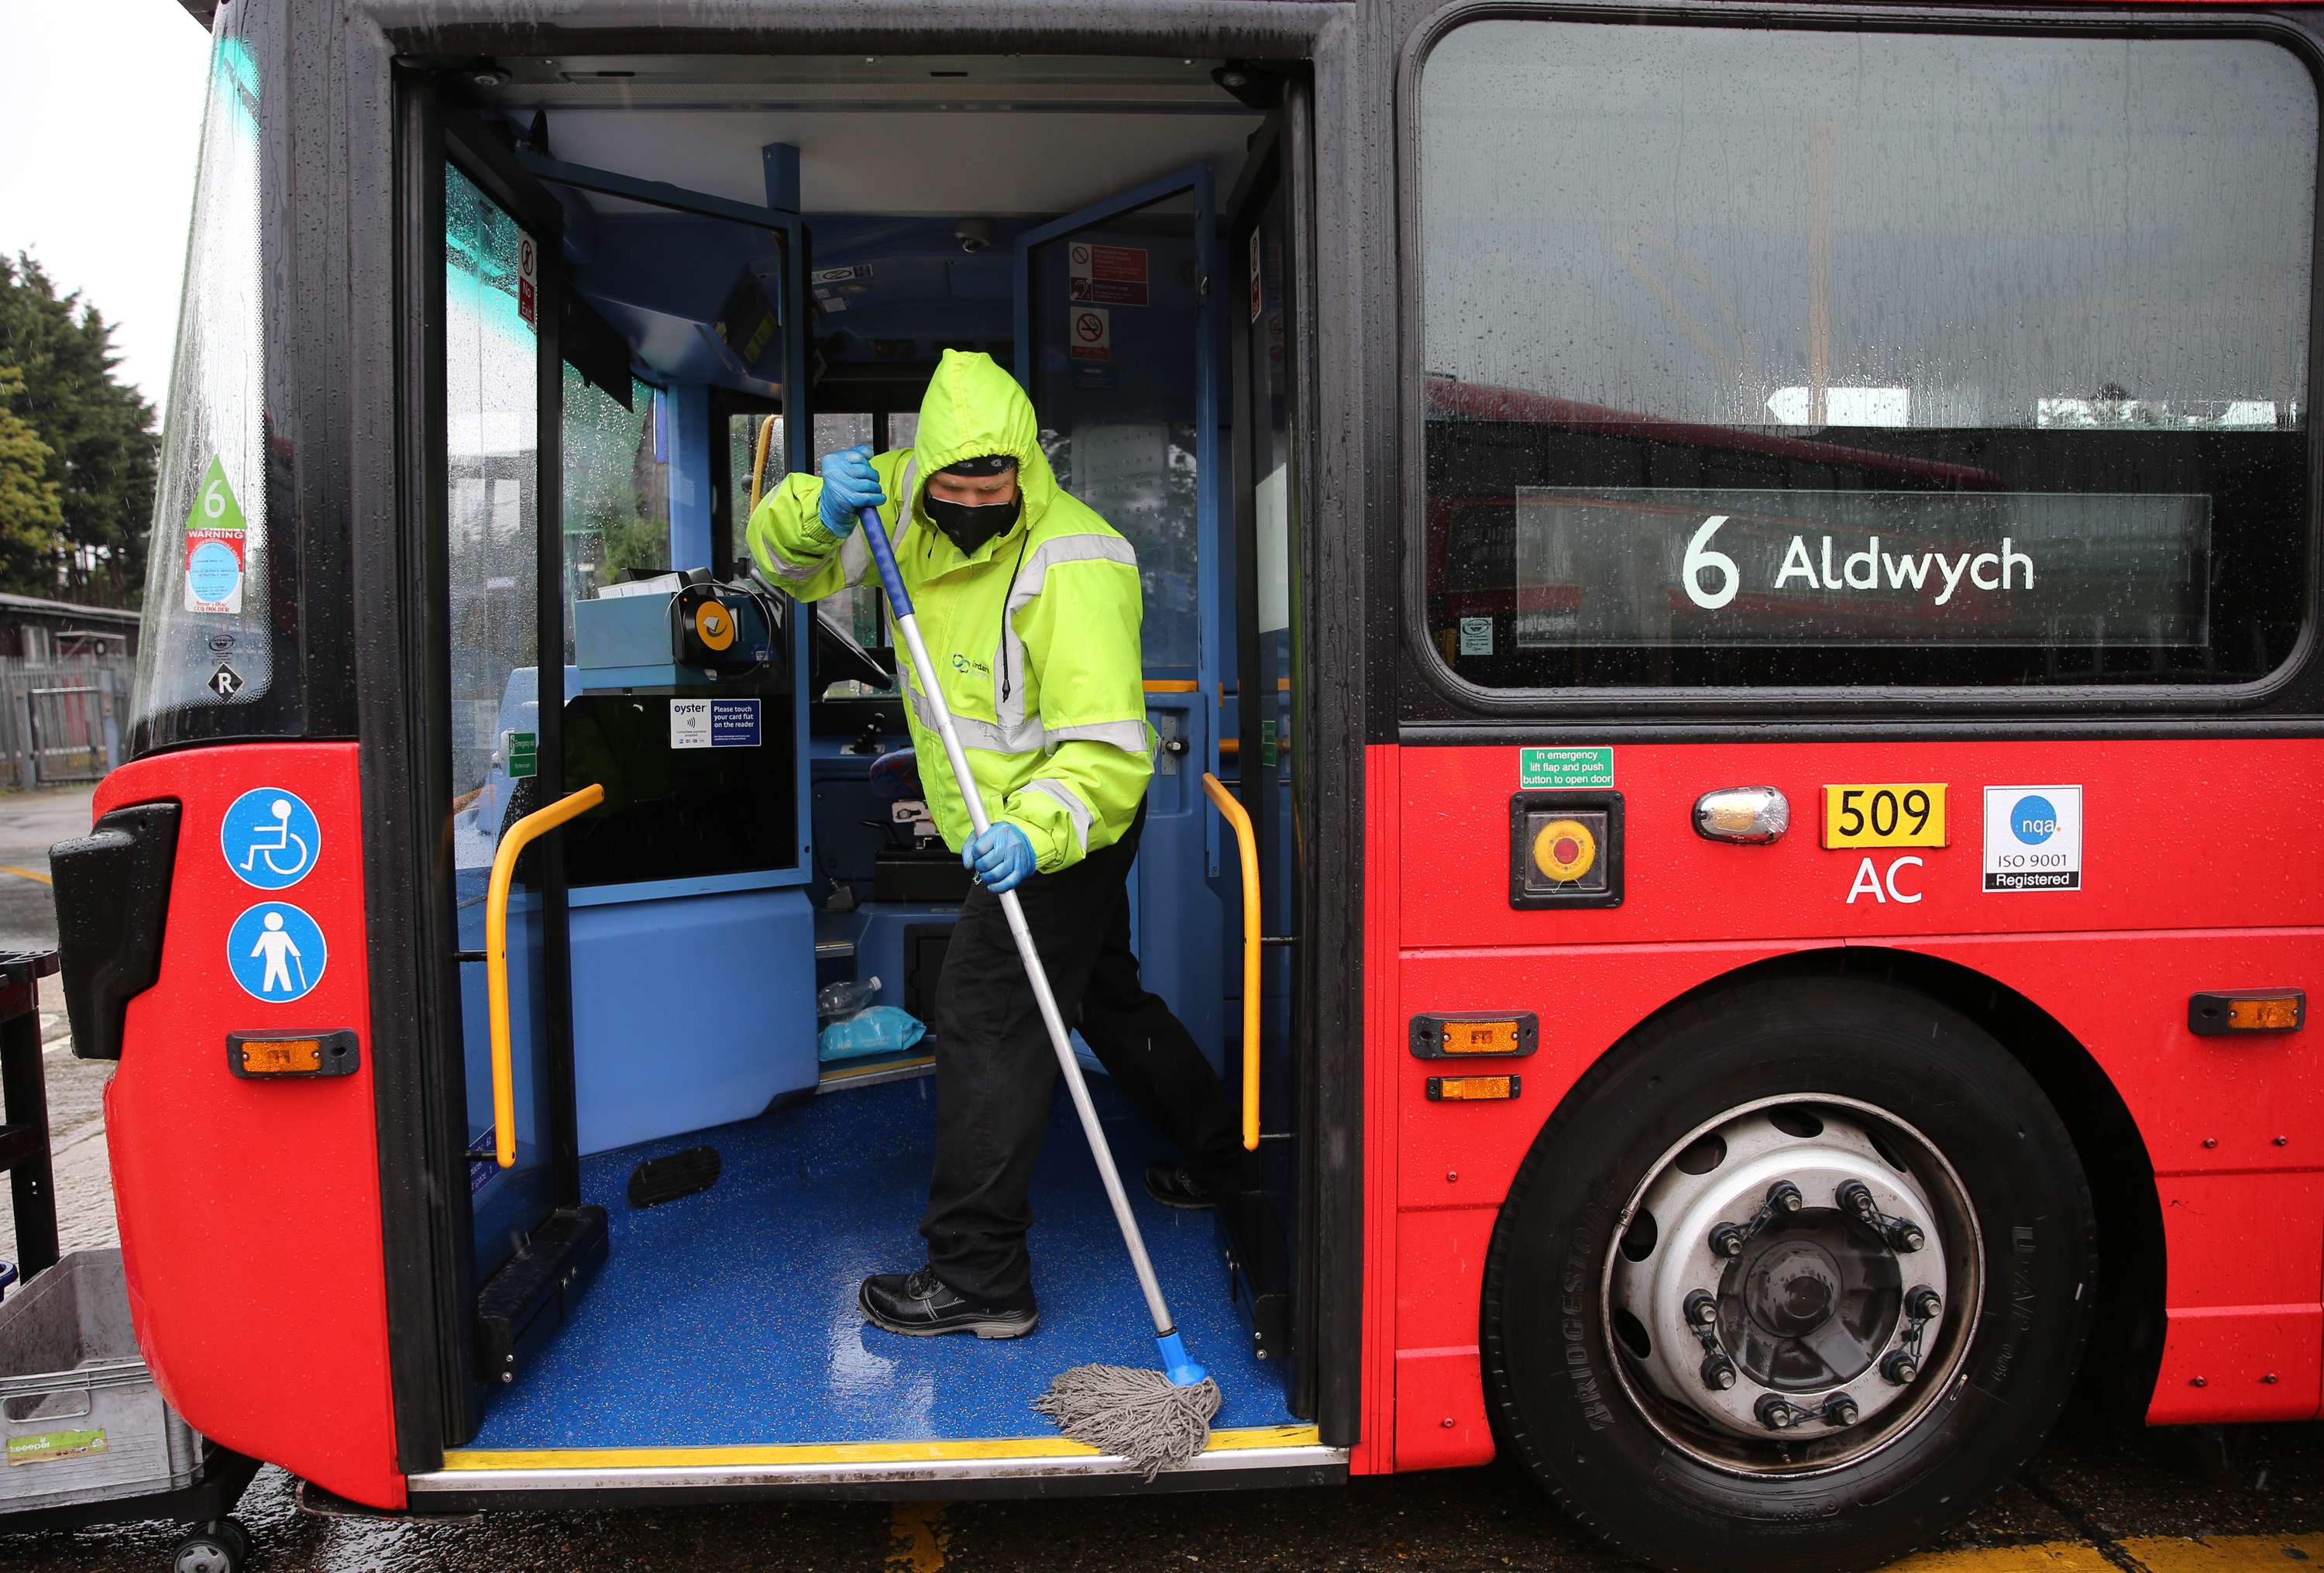 A Metroline worker cleans a bus at Willesden Bus Garage in north west London, as the UK continues in lockdown to help curb the spread of the coronavirus. Picture date: Tuesday April 28, 2020.